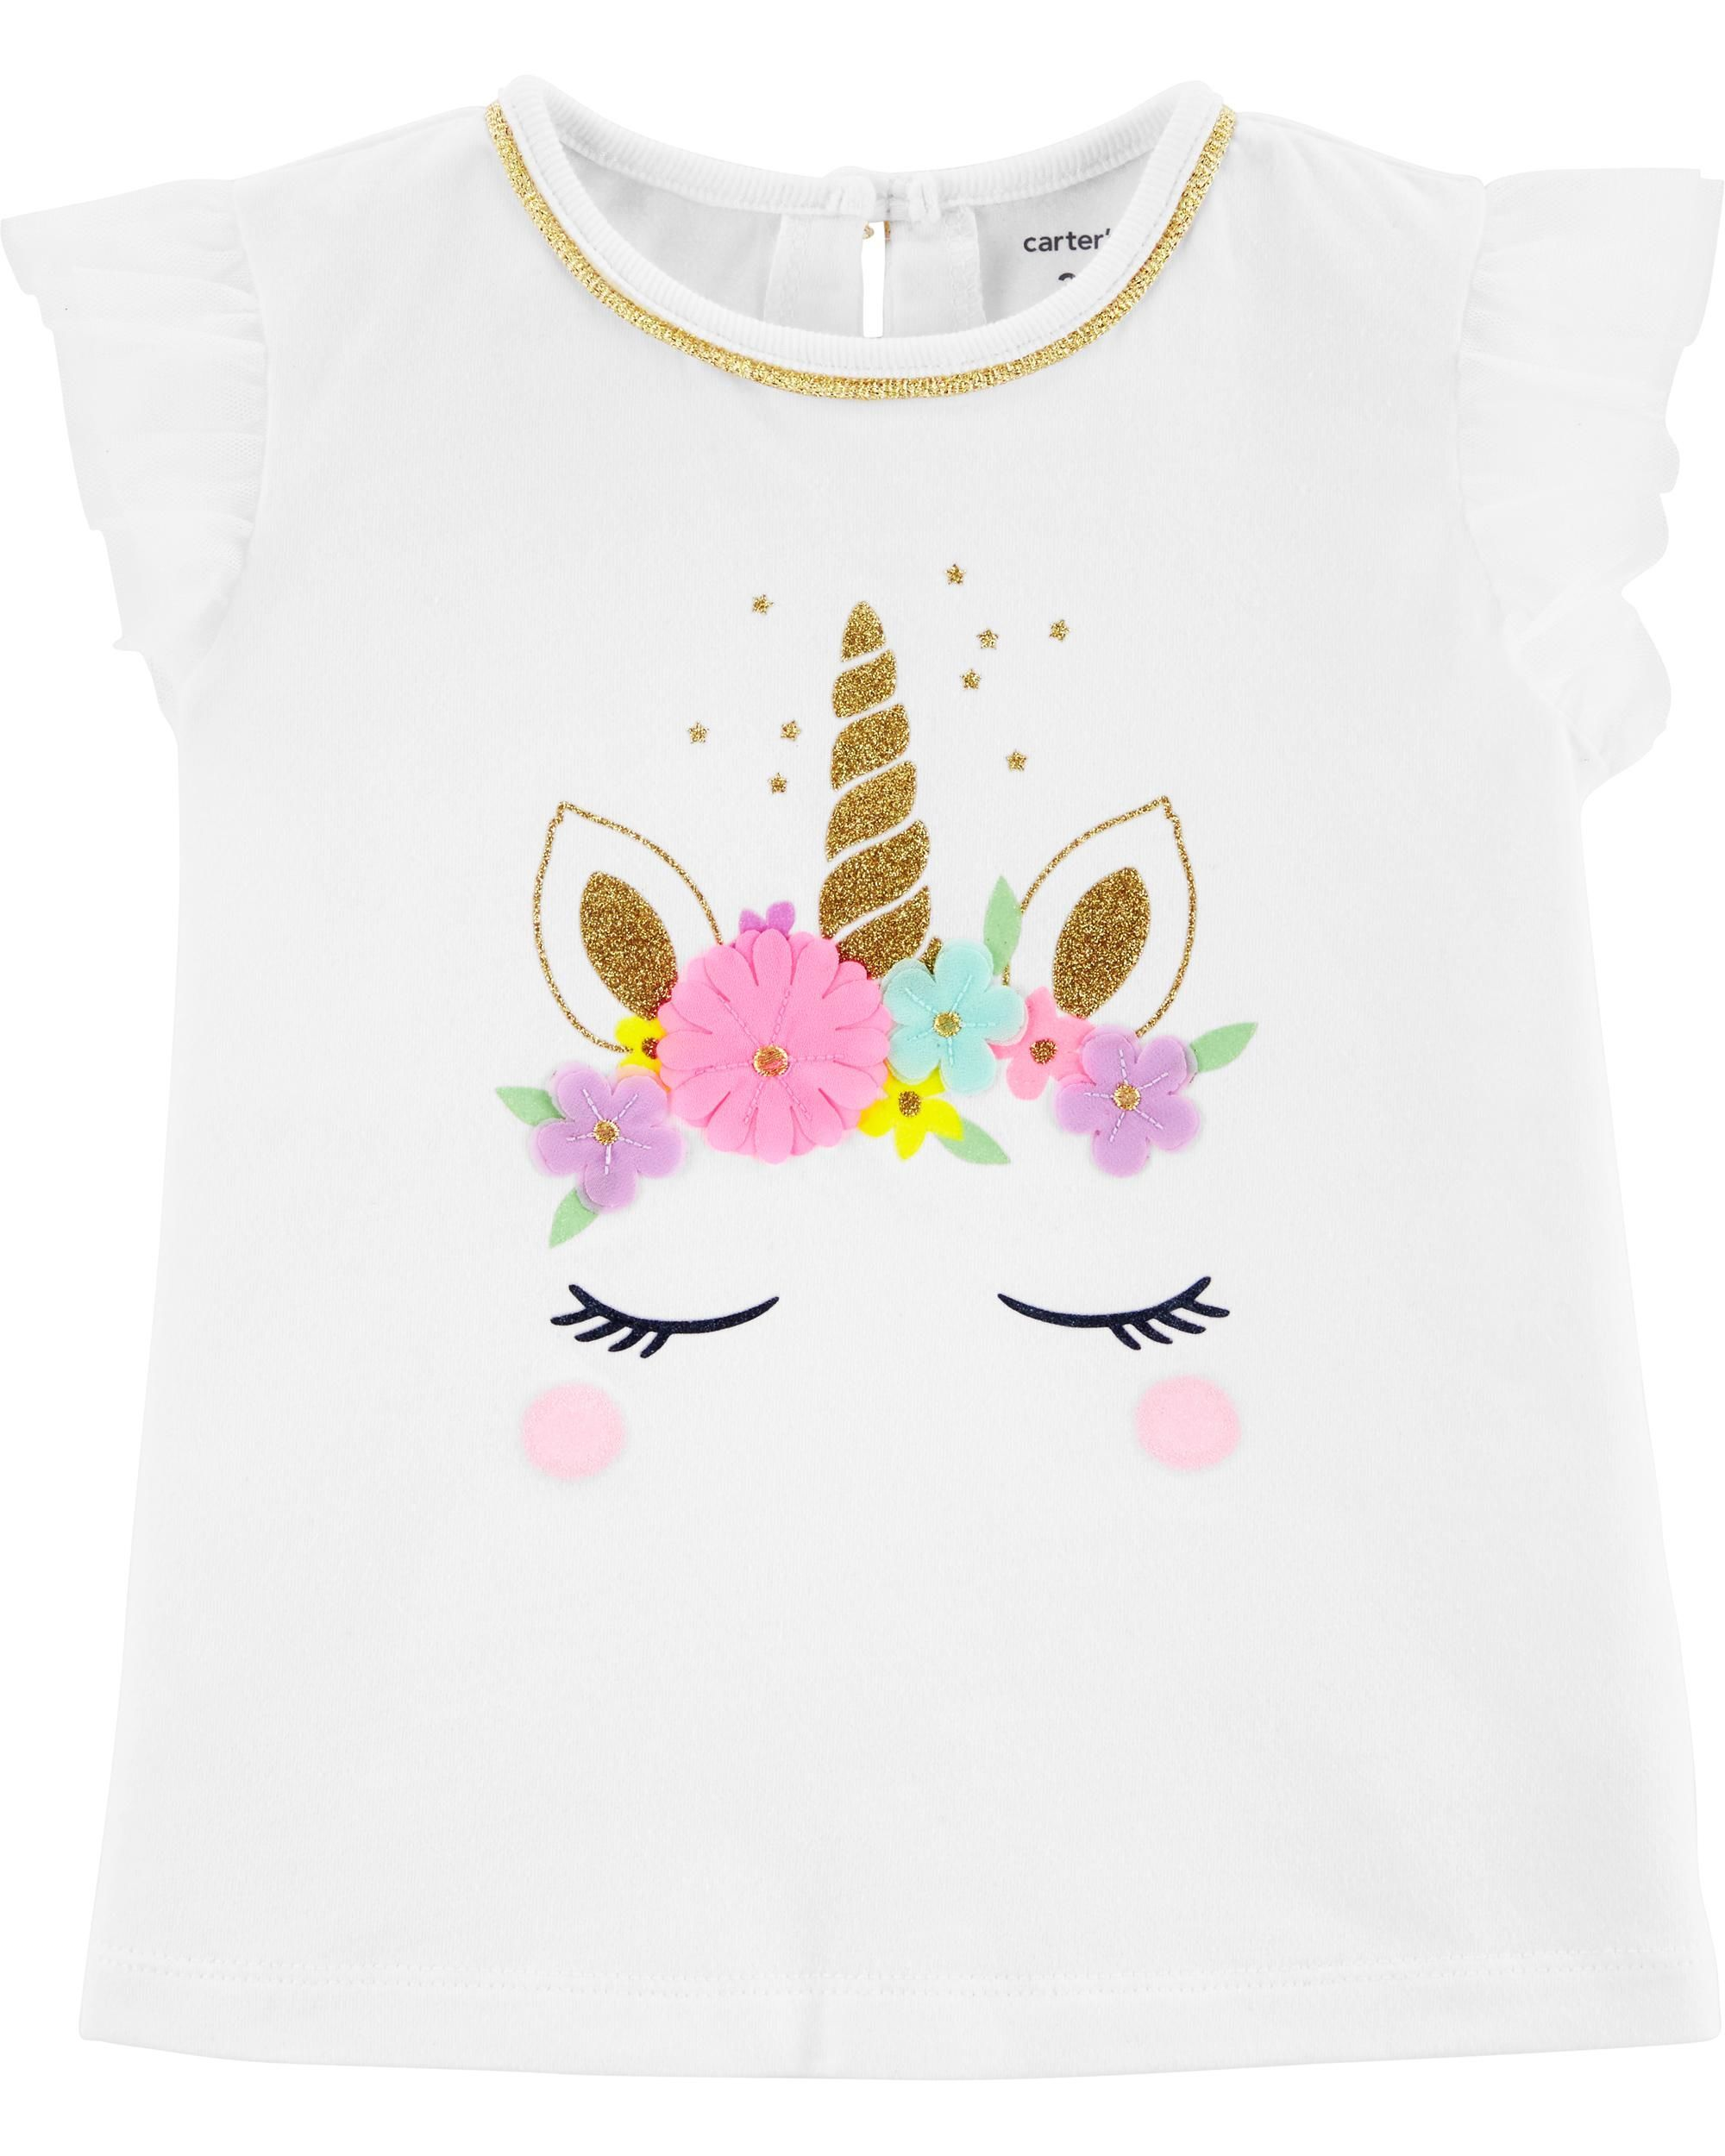 35f62b37659d4 Unicorn Tulle-Sleeve Top | baby girl | Tops, Kids clothing canada ...